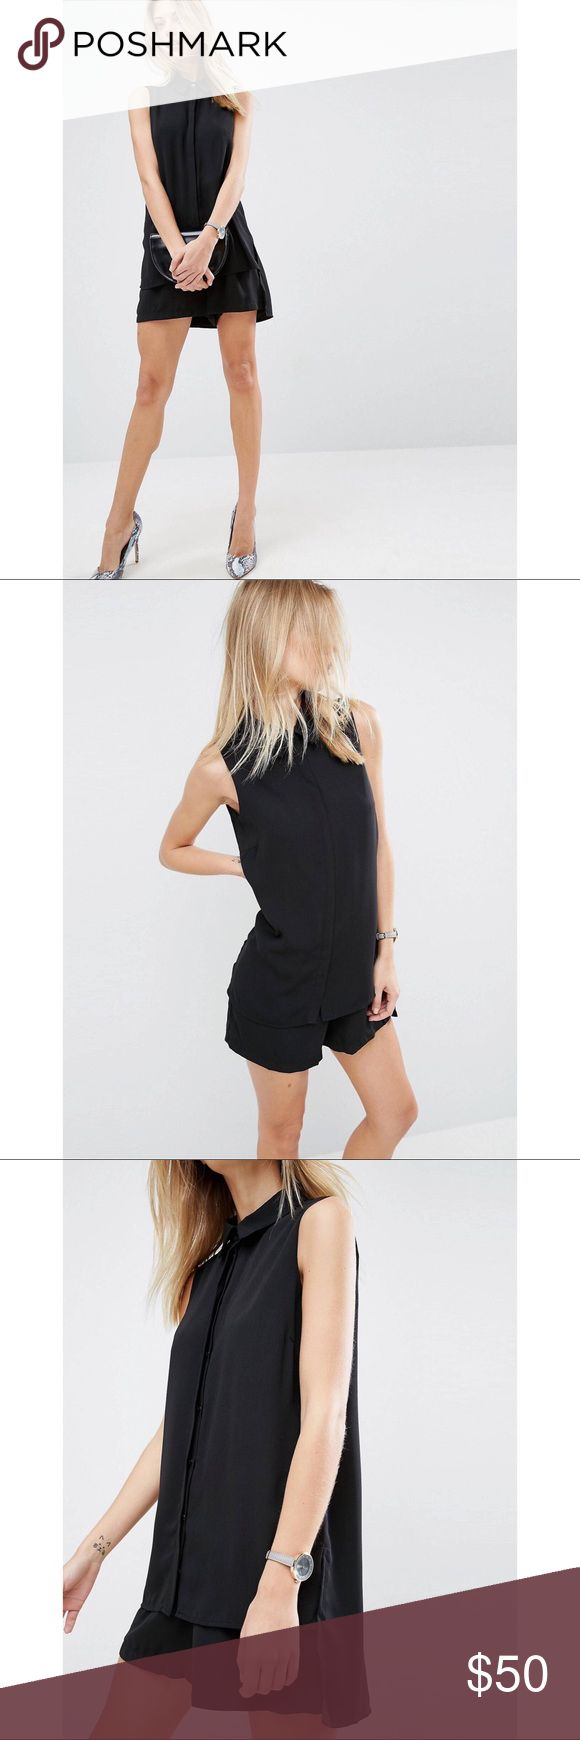 """ASOS """"Minimal Romper with Shirt Detail"""" ▪️A very chic and comfy romper from ASOS▪️ Size is SMALL and fits true to size. FYI I am 5' 2"""" and about 125 lbs and it fit well.  New without tags, worn only once and dry-cleaned. Asos Other"""